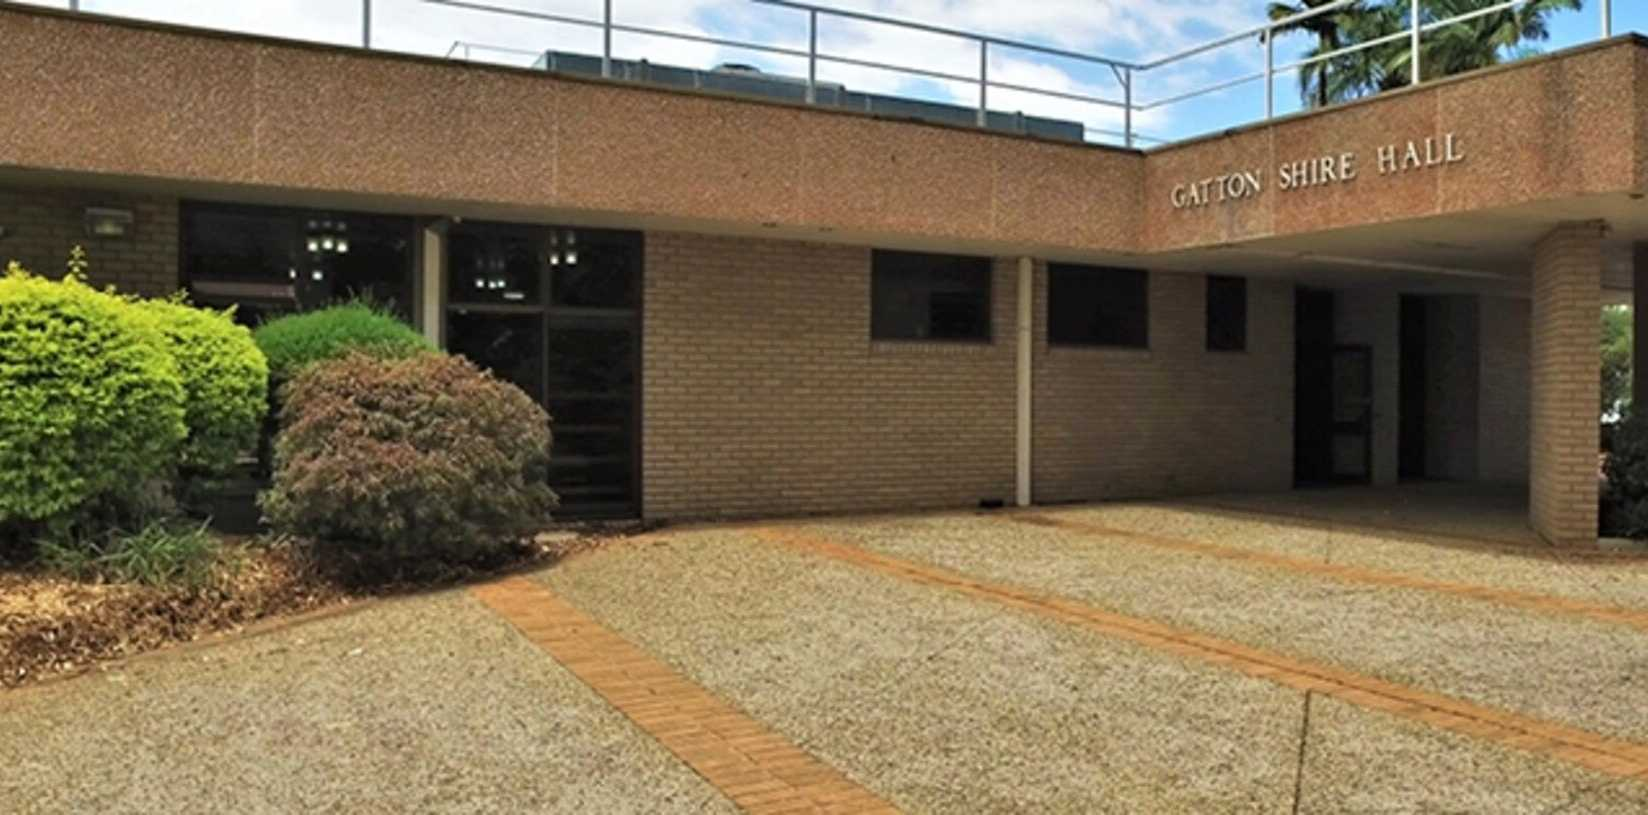 Refurbishment works on the Gatton Shire Hall are set to commence this month. Photo: Lockyer Valley Regional Council.